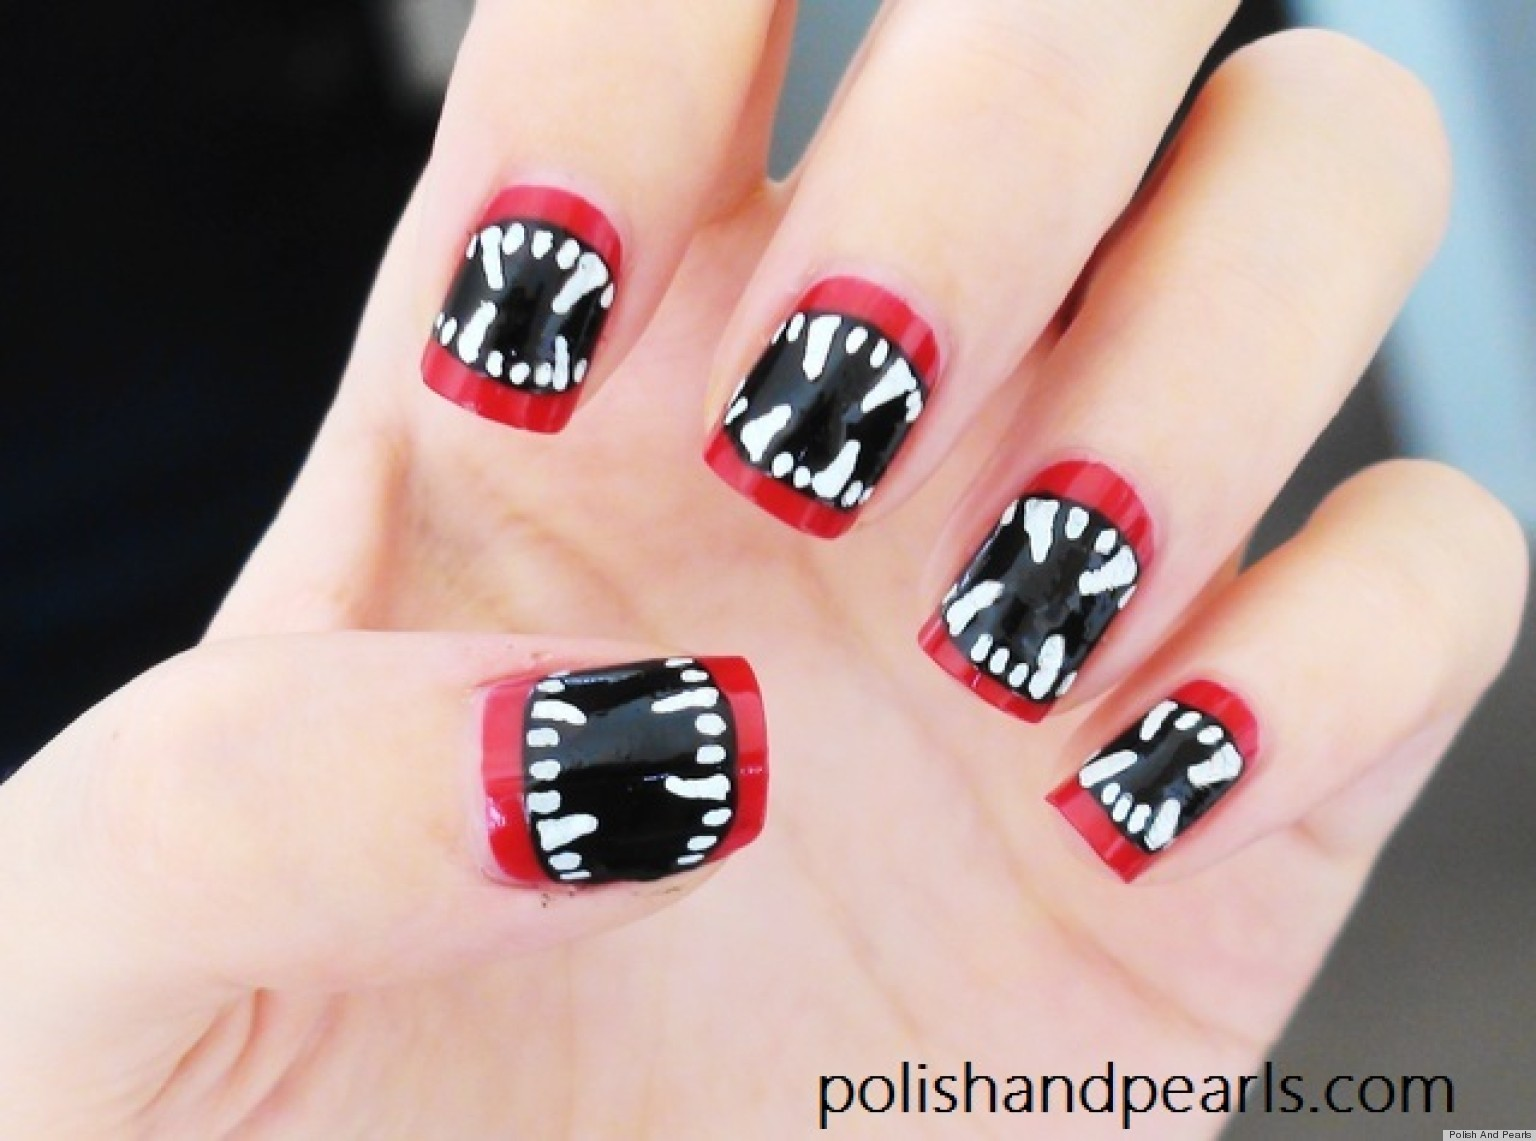 nail art the vampire diaries - Google Search on We Heart It